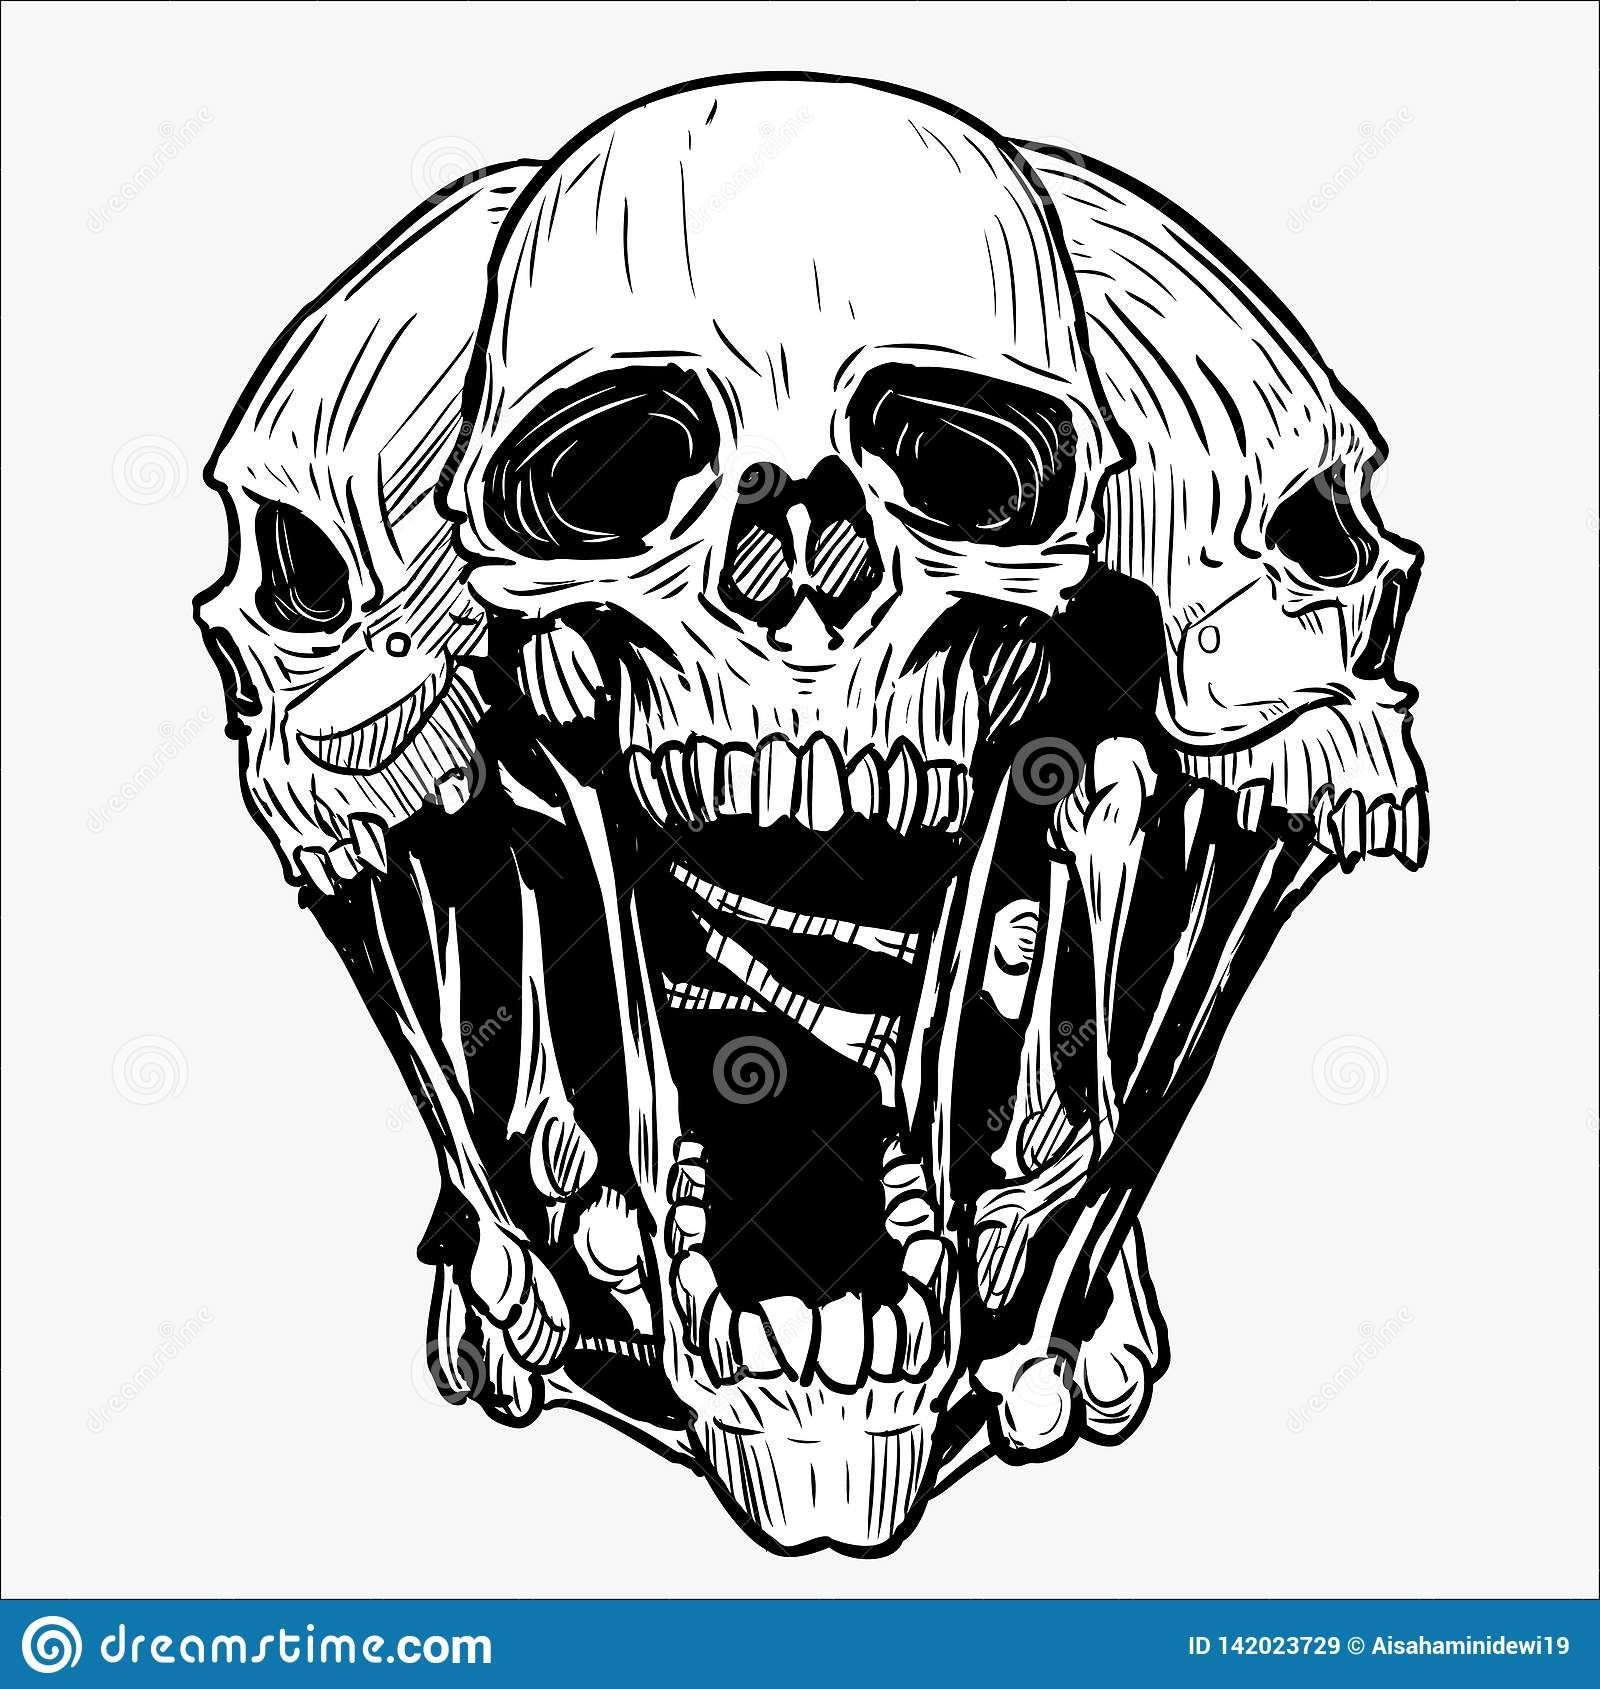 Illustration about Skull vector for tattoo designs, t